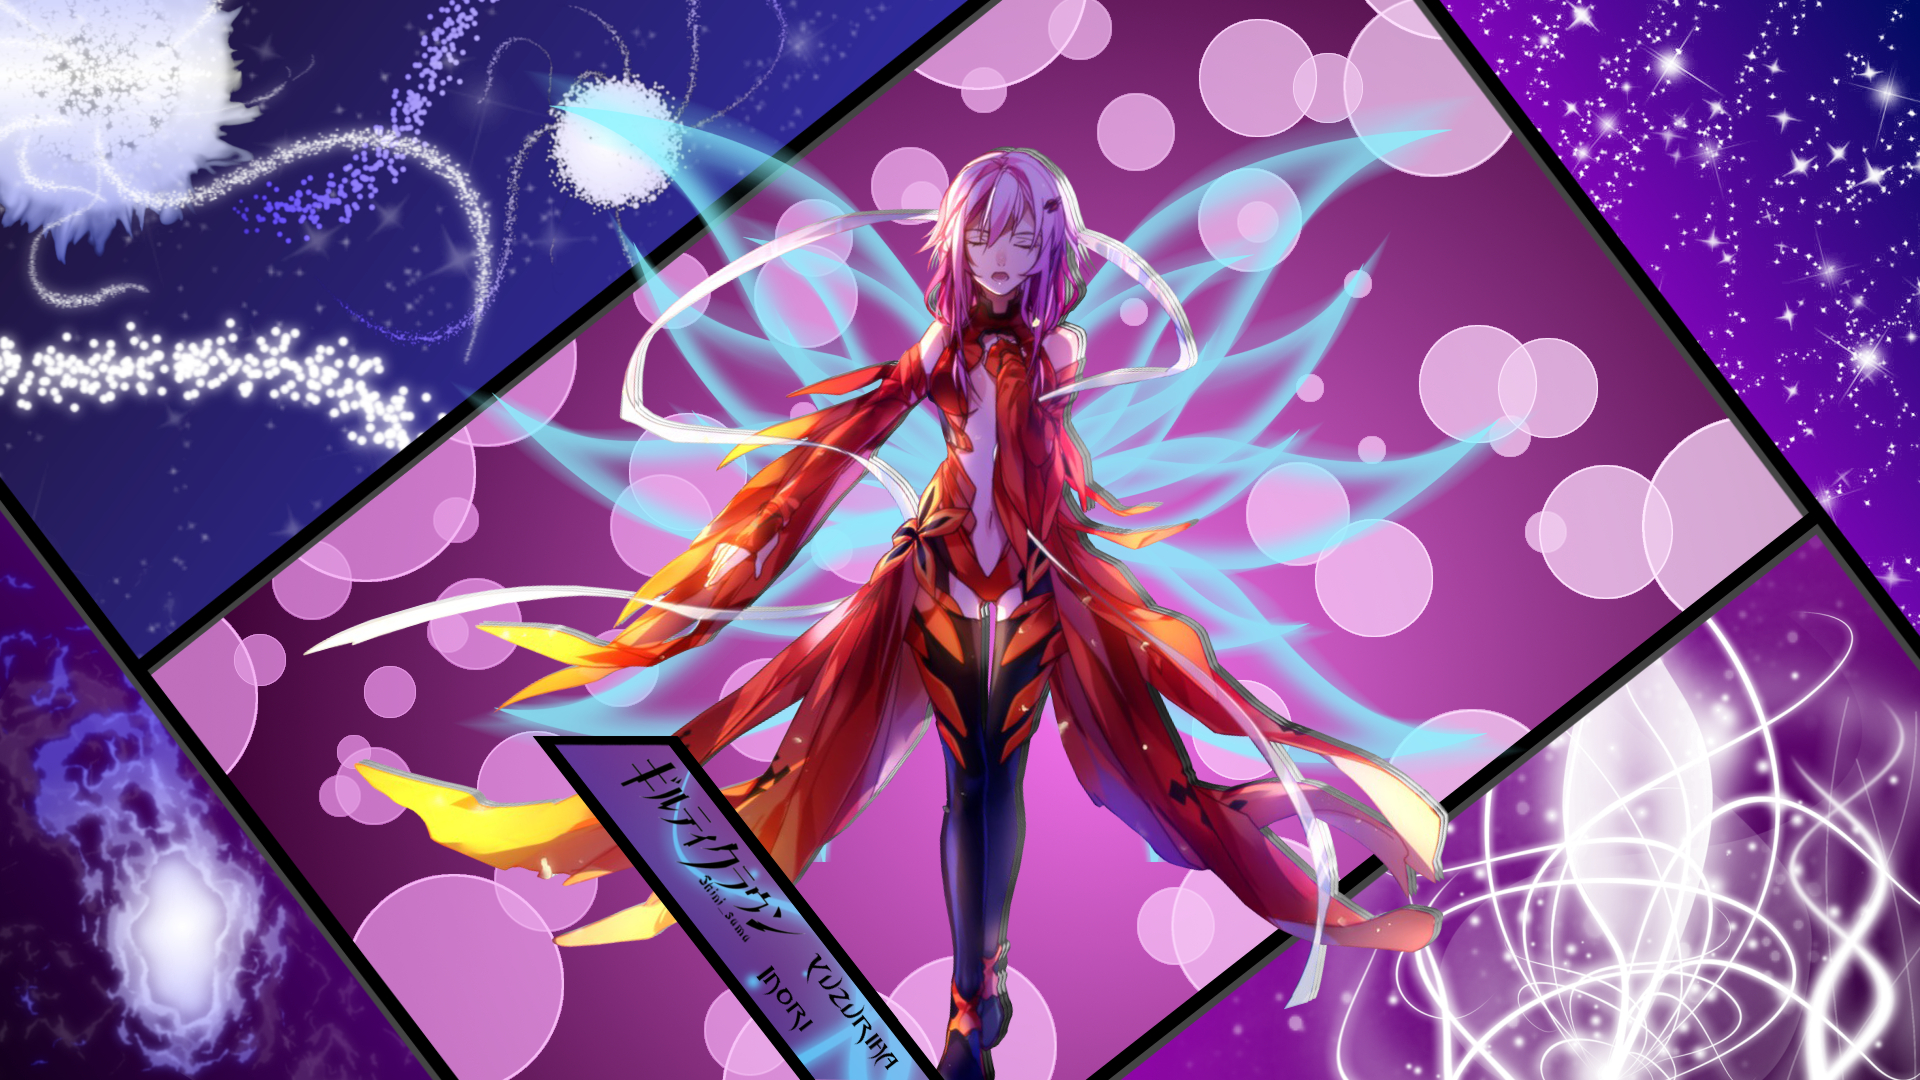 Photo Guilty Crown Anime Female 1920x1080